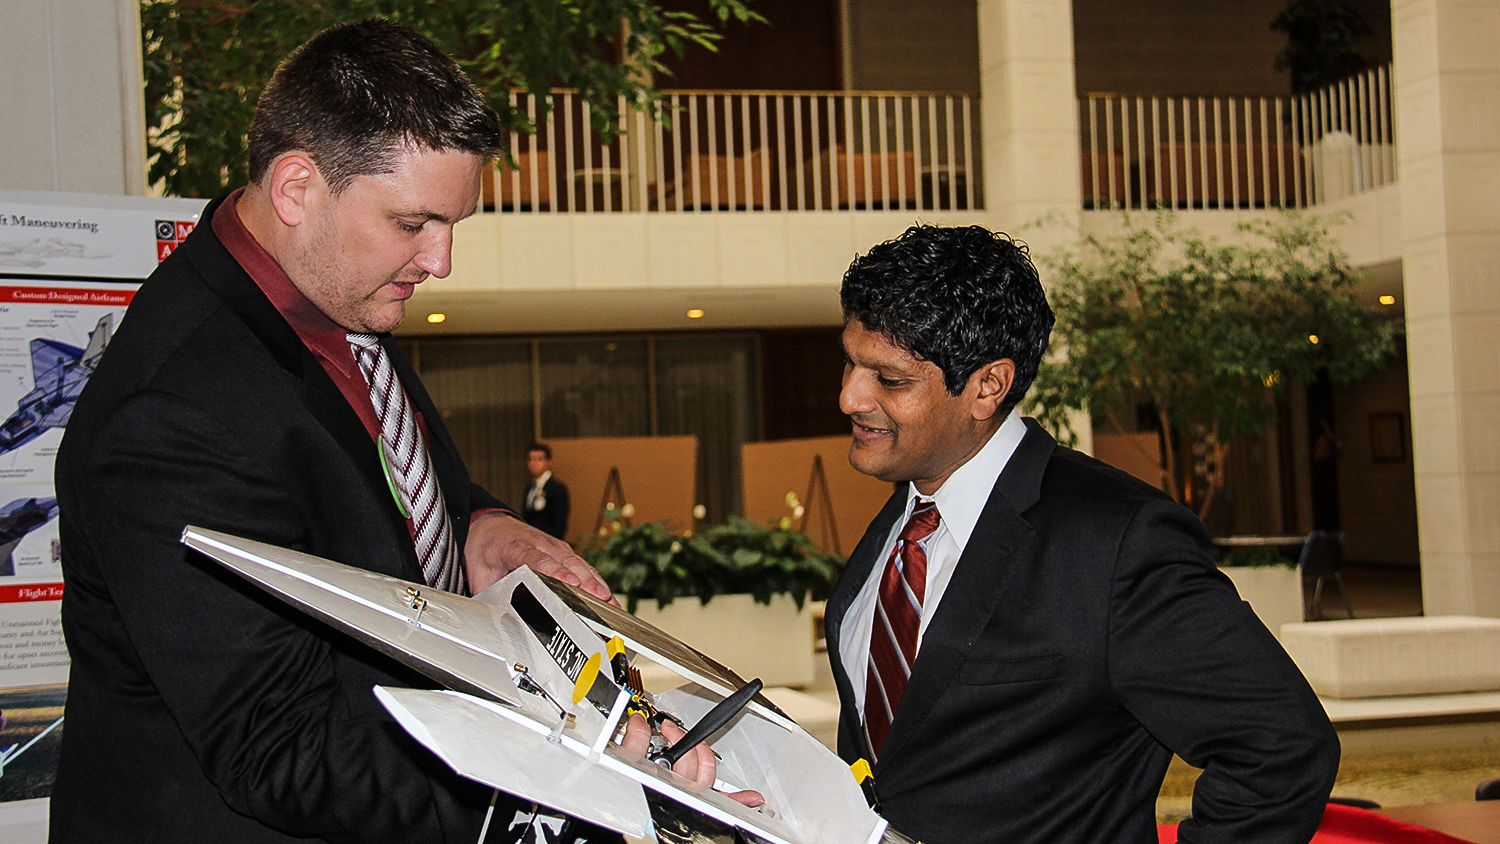 Pearce and Chaudhuri with model plane